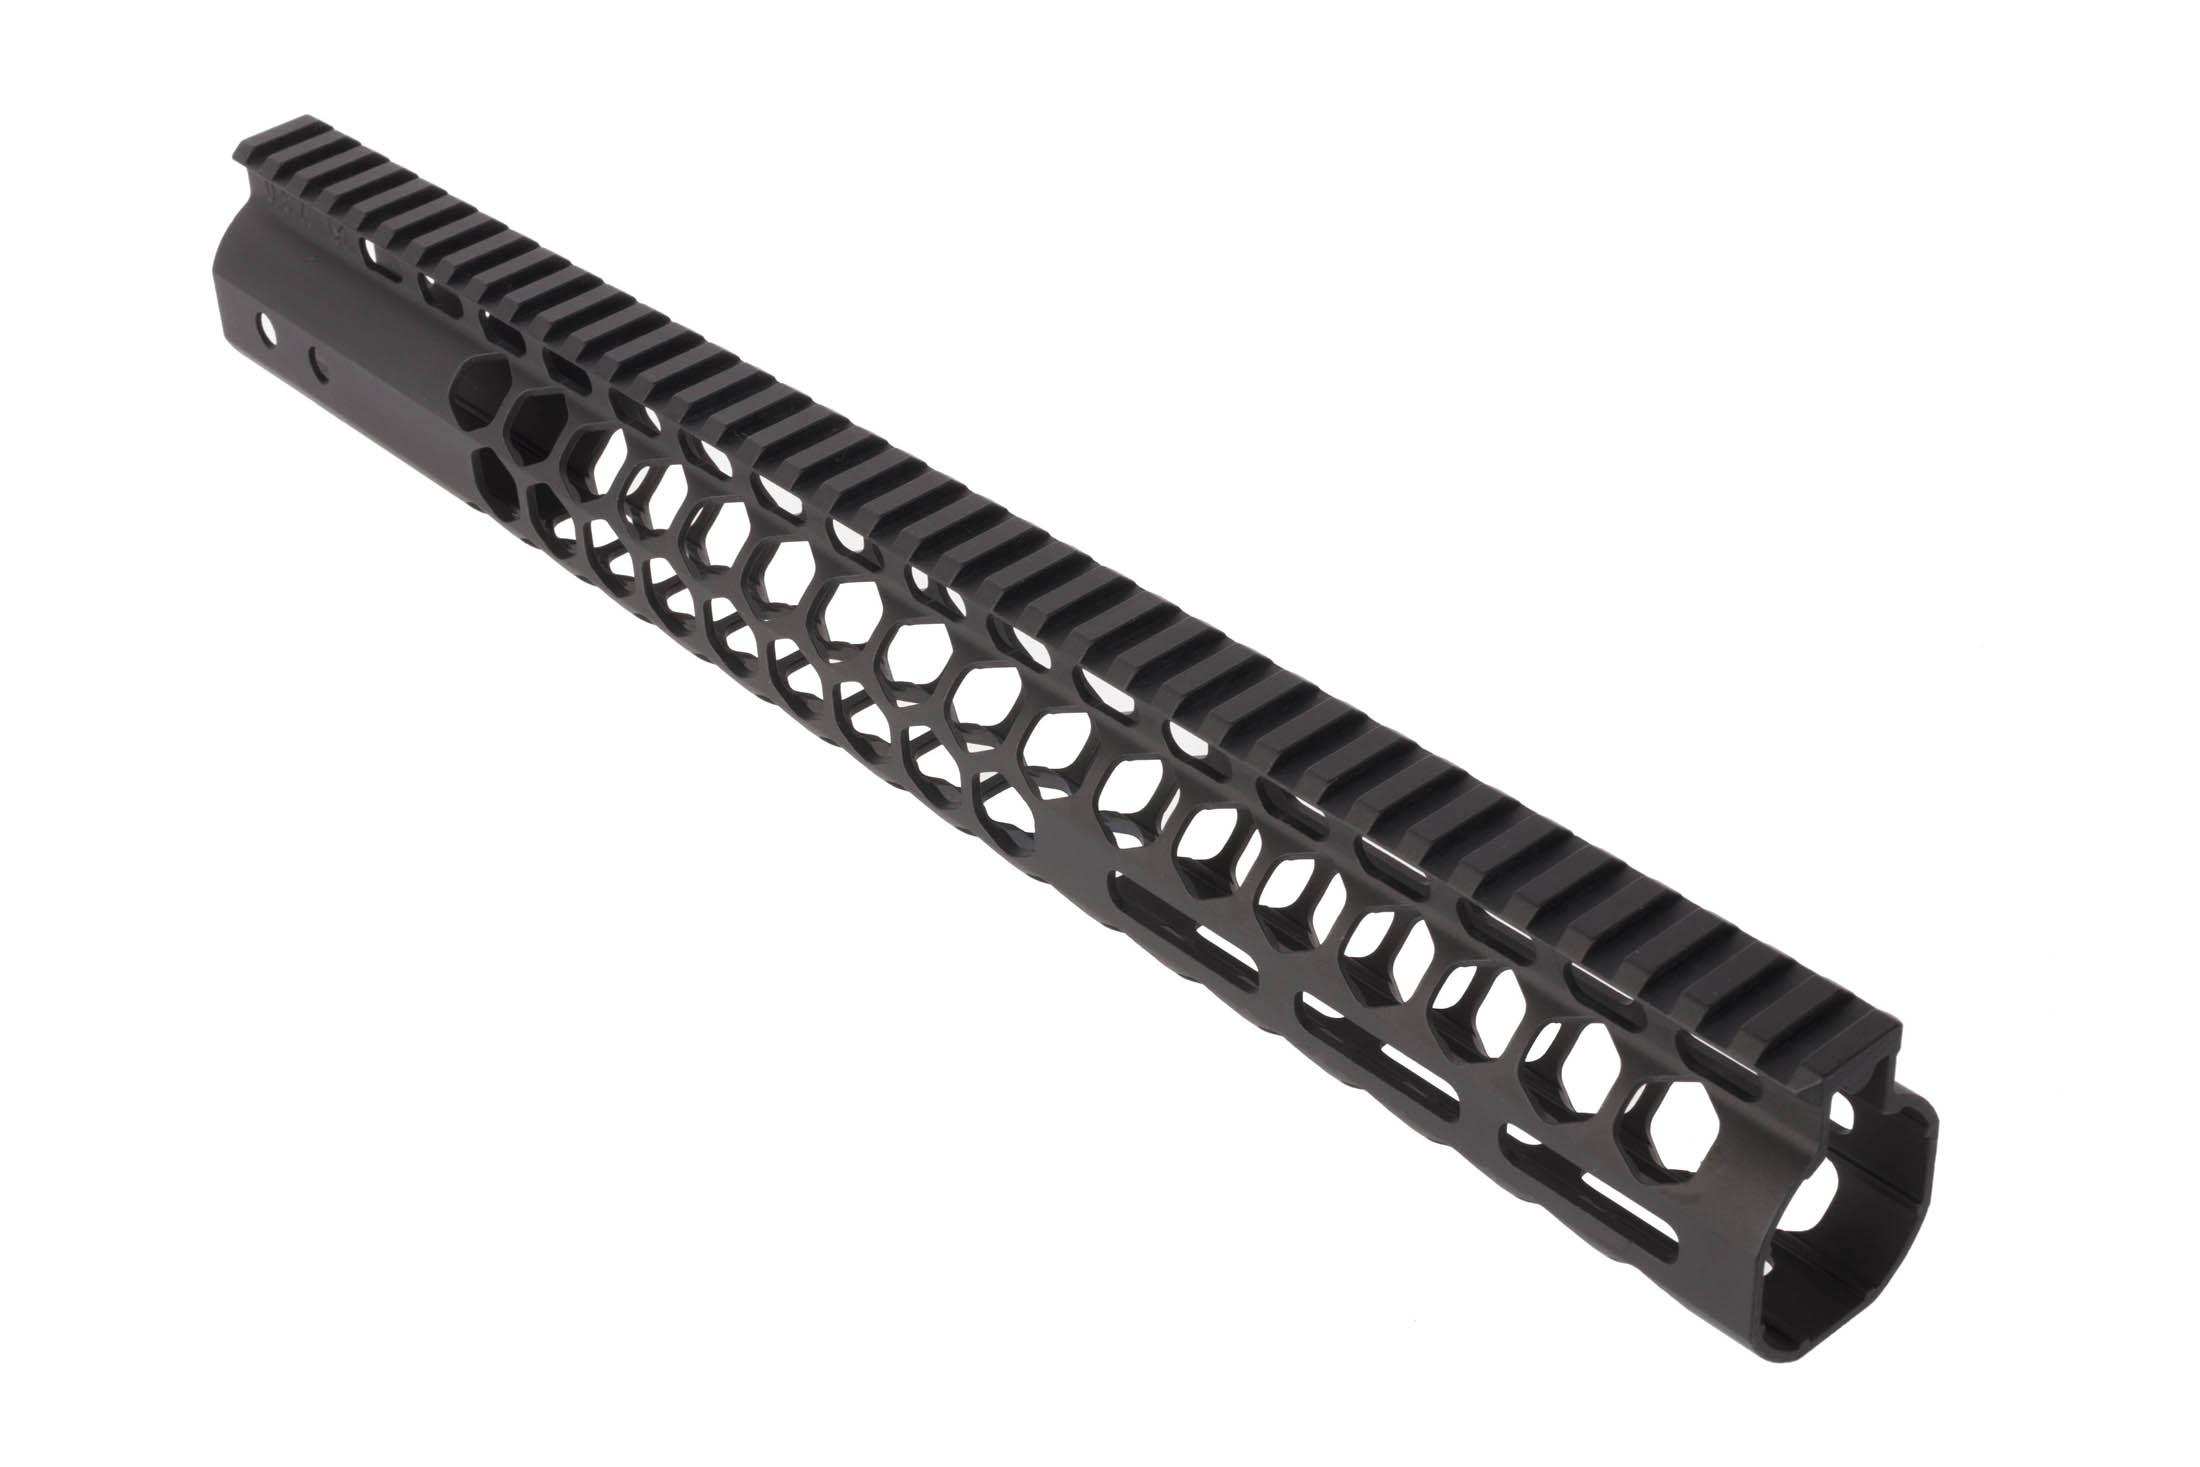 Guntec USA 15in Air Lite Honeycomb AR-15 handguard with M-LOK has a block anodized finish.